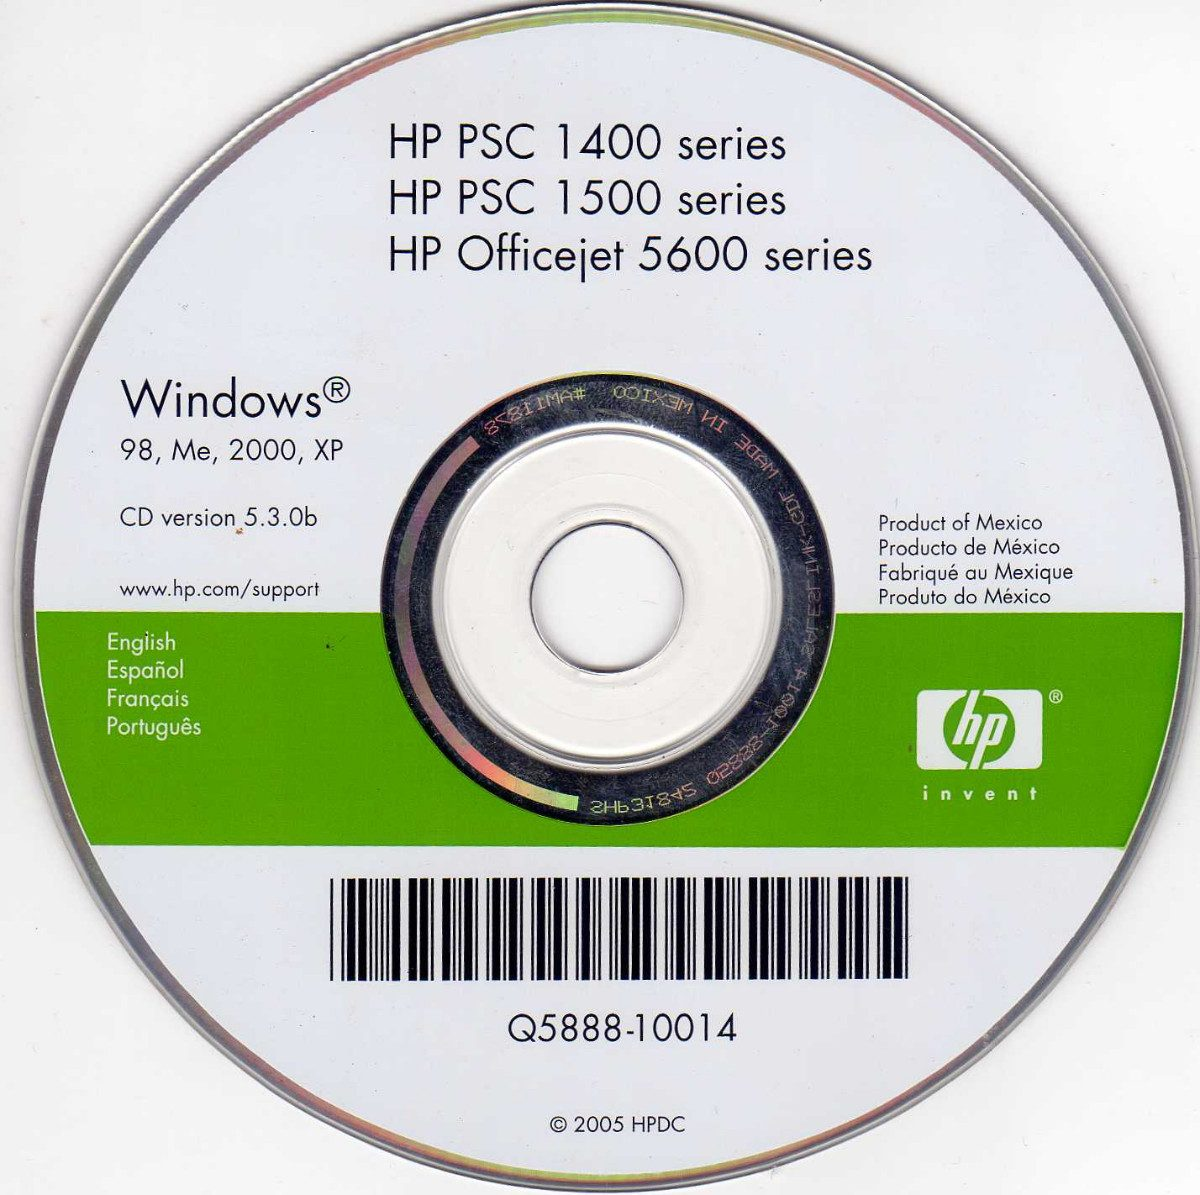 Pin Hp Psc 1400 All In One Printer Driver And Firmware